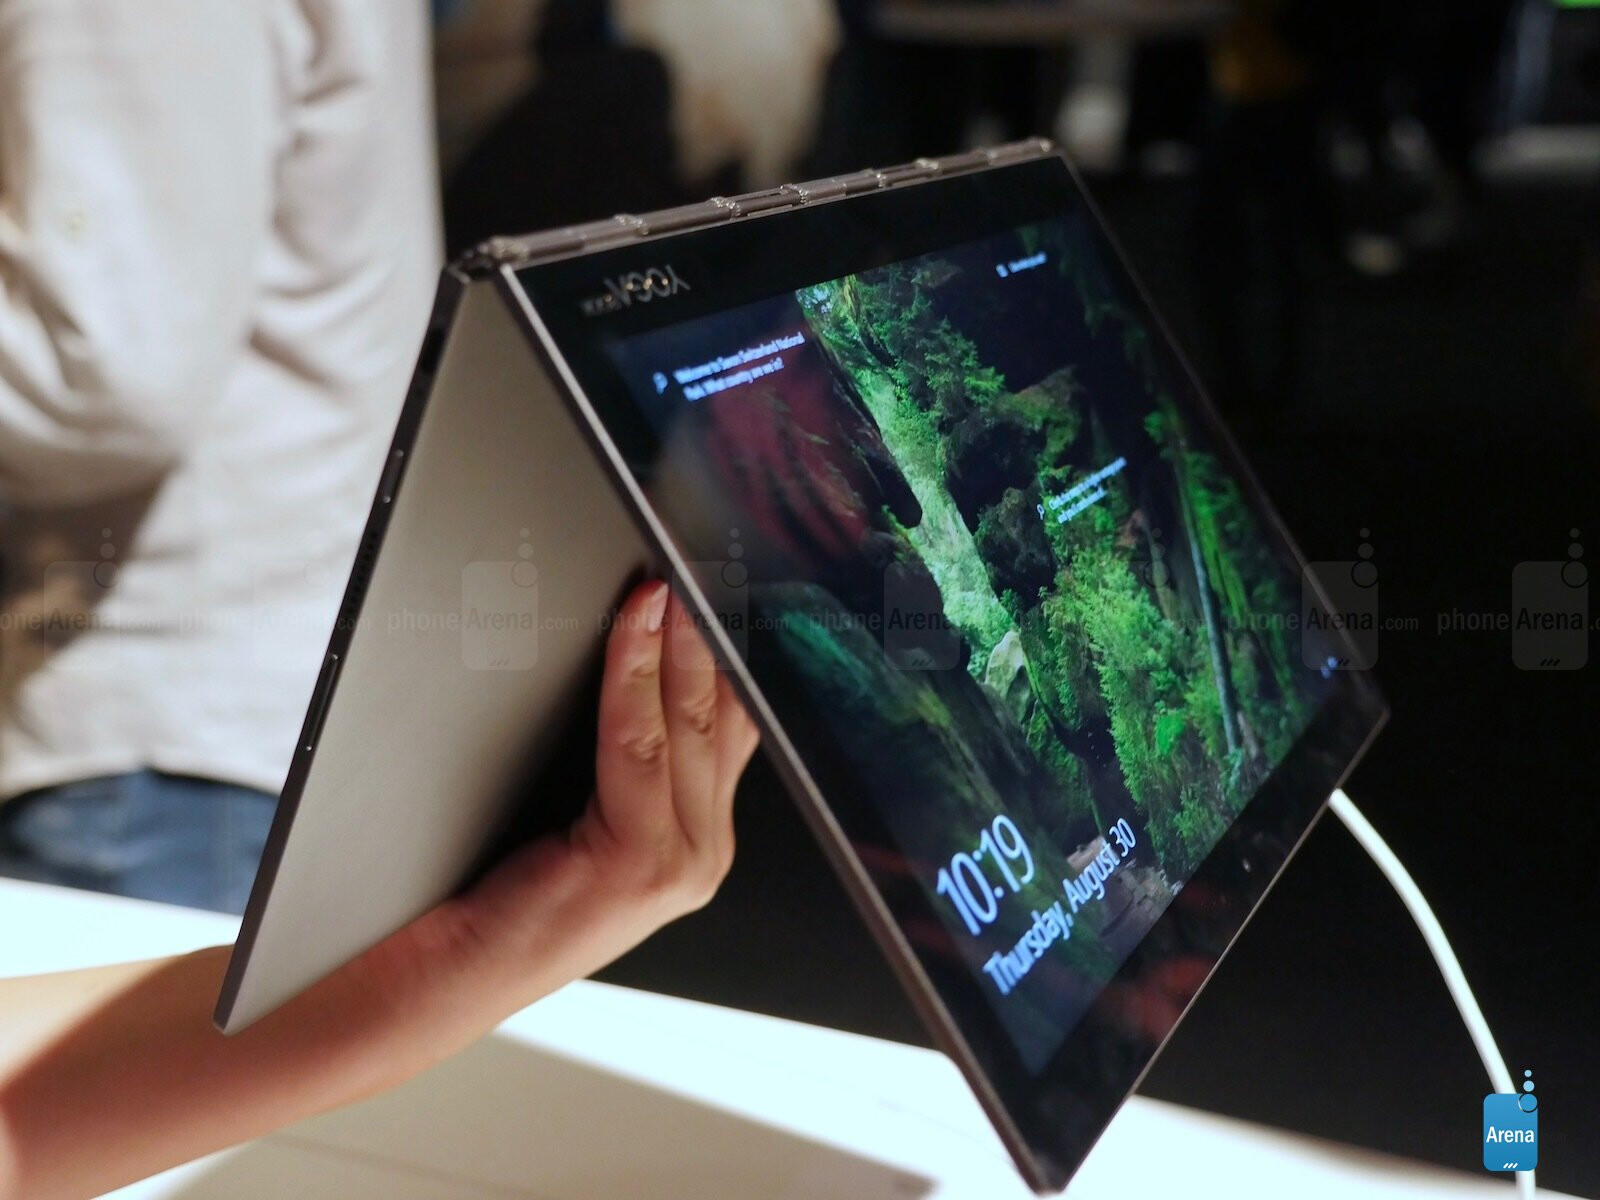 Lenovo has a new Yoga Book: a two-screen tablet hybrid with E Ink